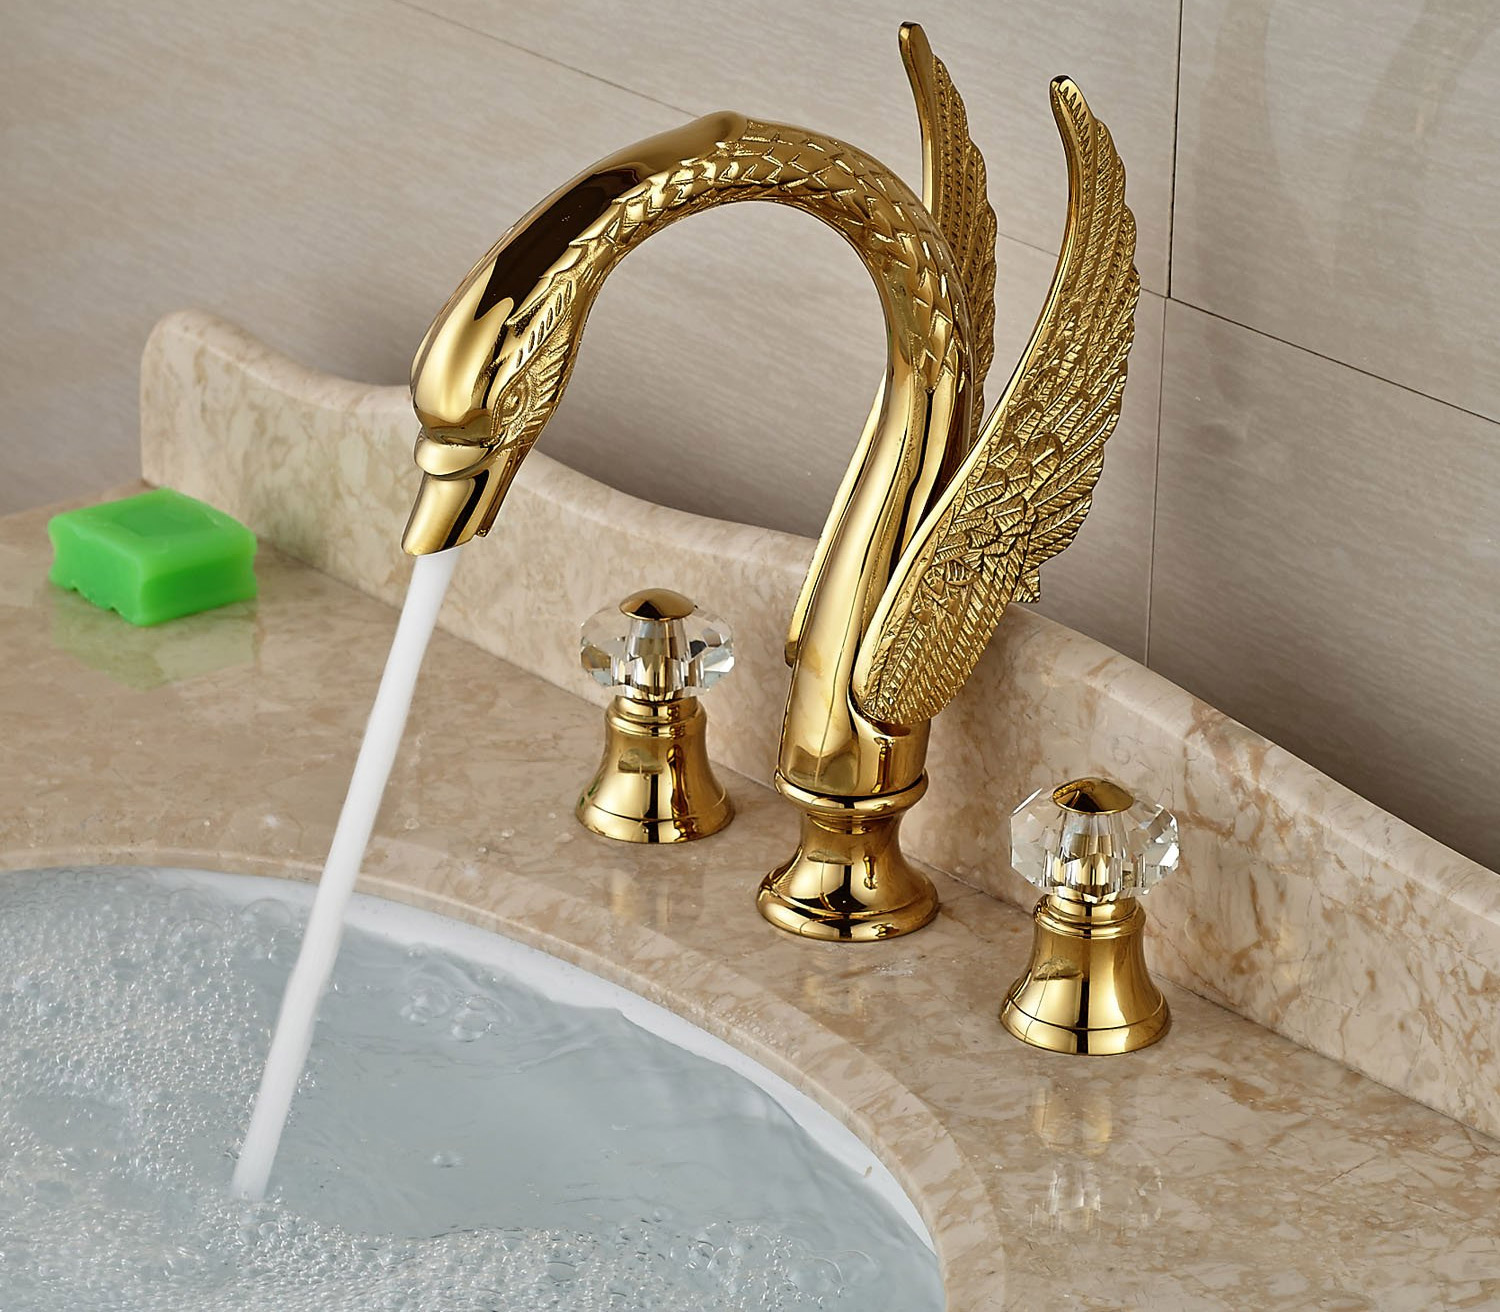 Luxurious Swan Faucet - Golden Wings bird faucet